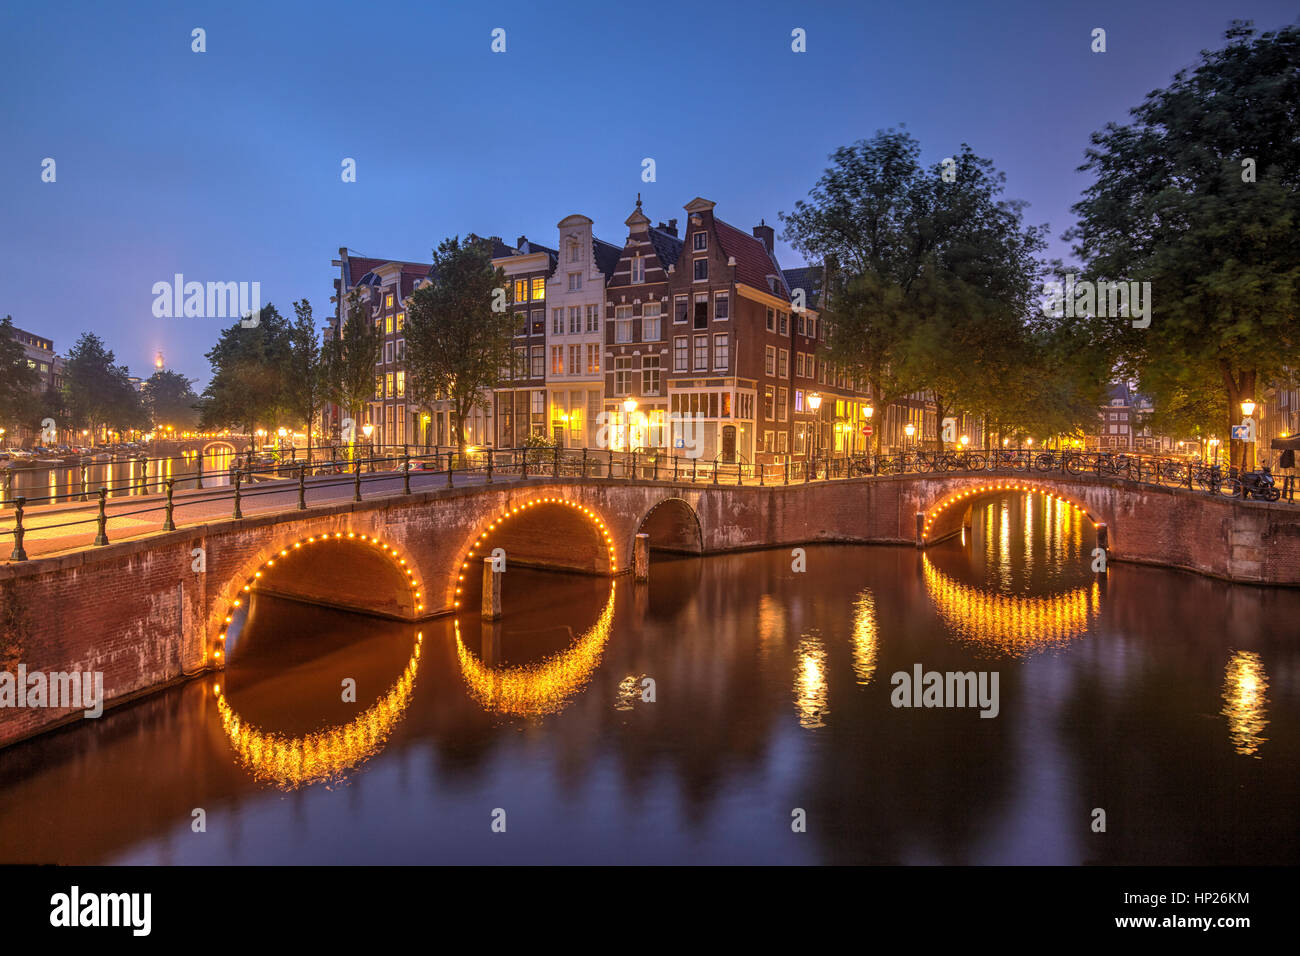 Traditional canals in Amsterdam, Netherlands - Stock Image